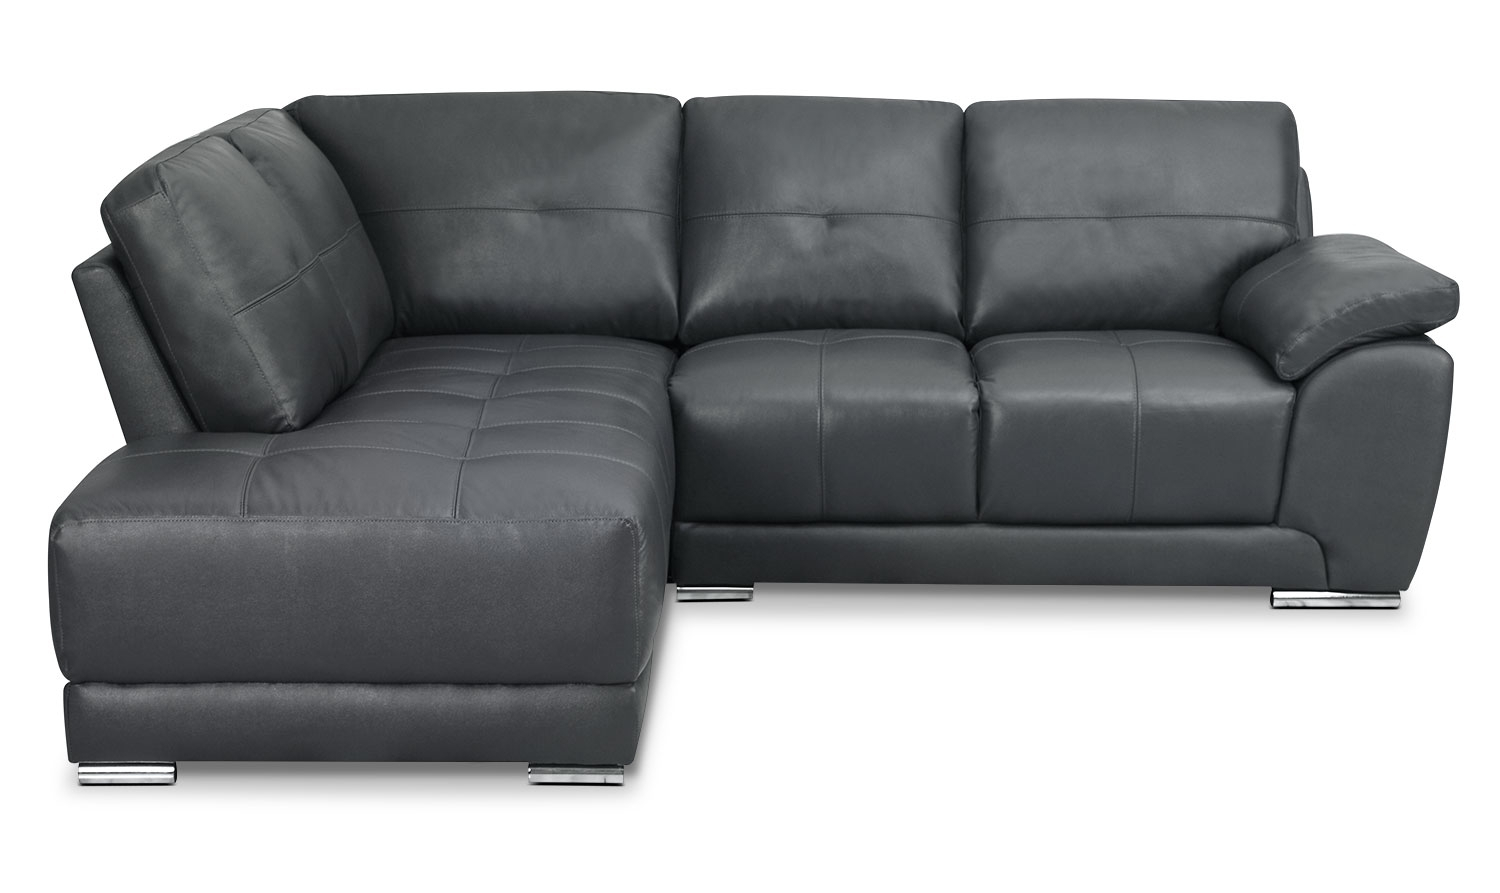 The Brick Canada Sectional Sofa | Functionalities within Sectional Sofas At Brick (Image 13 of 15)